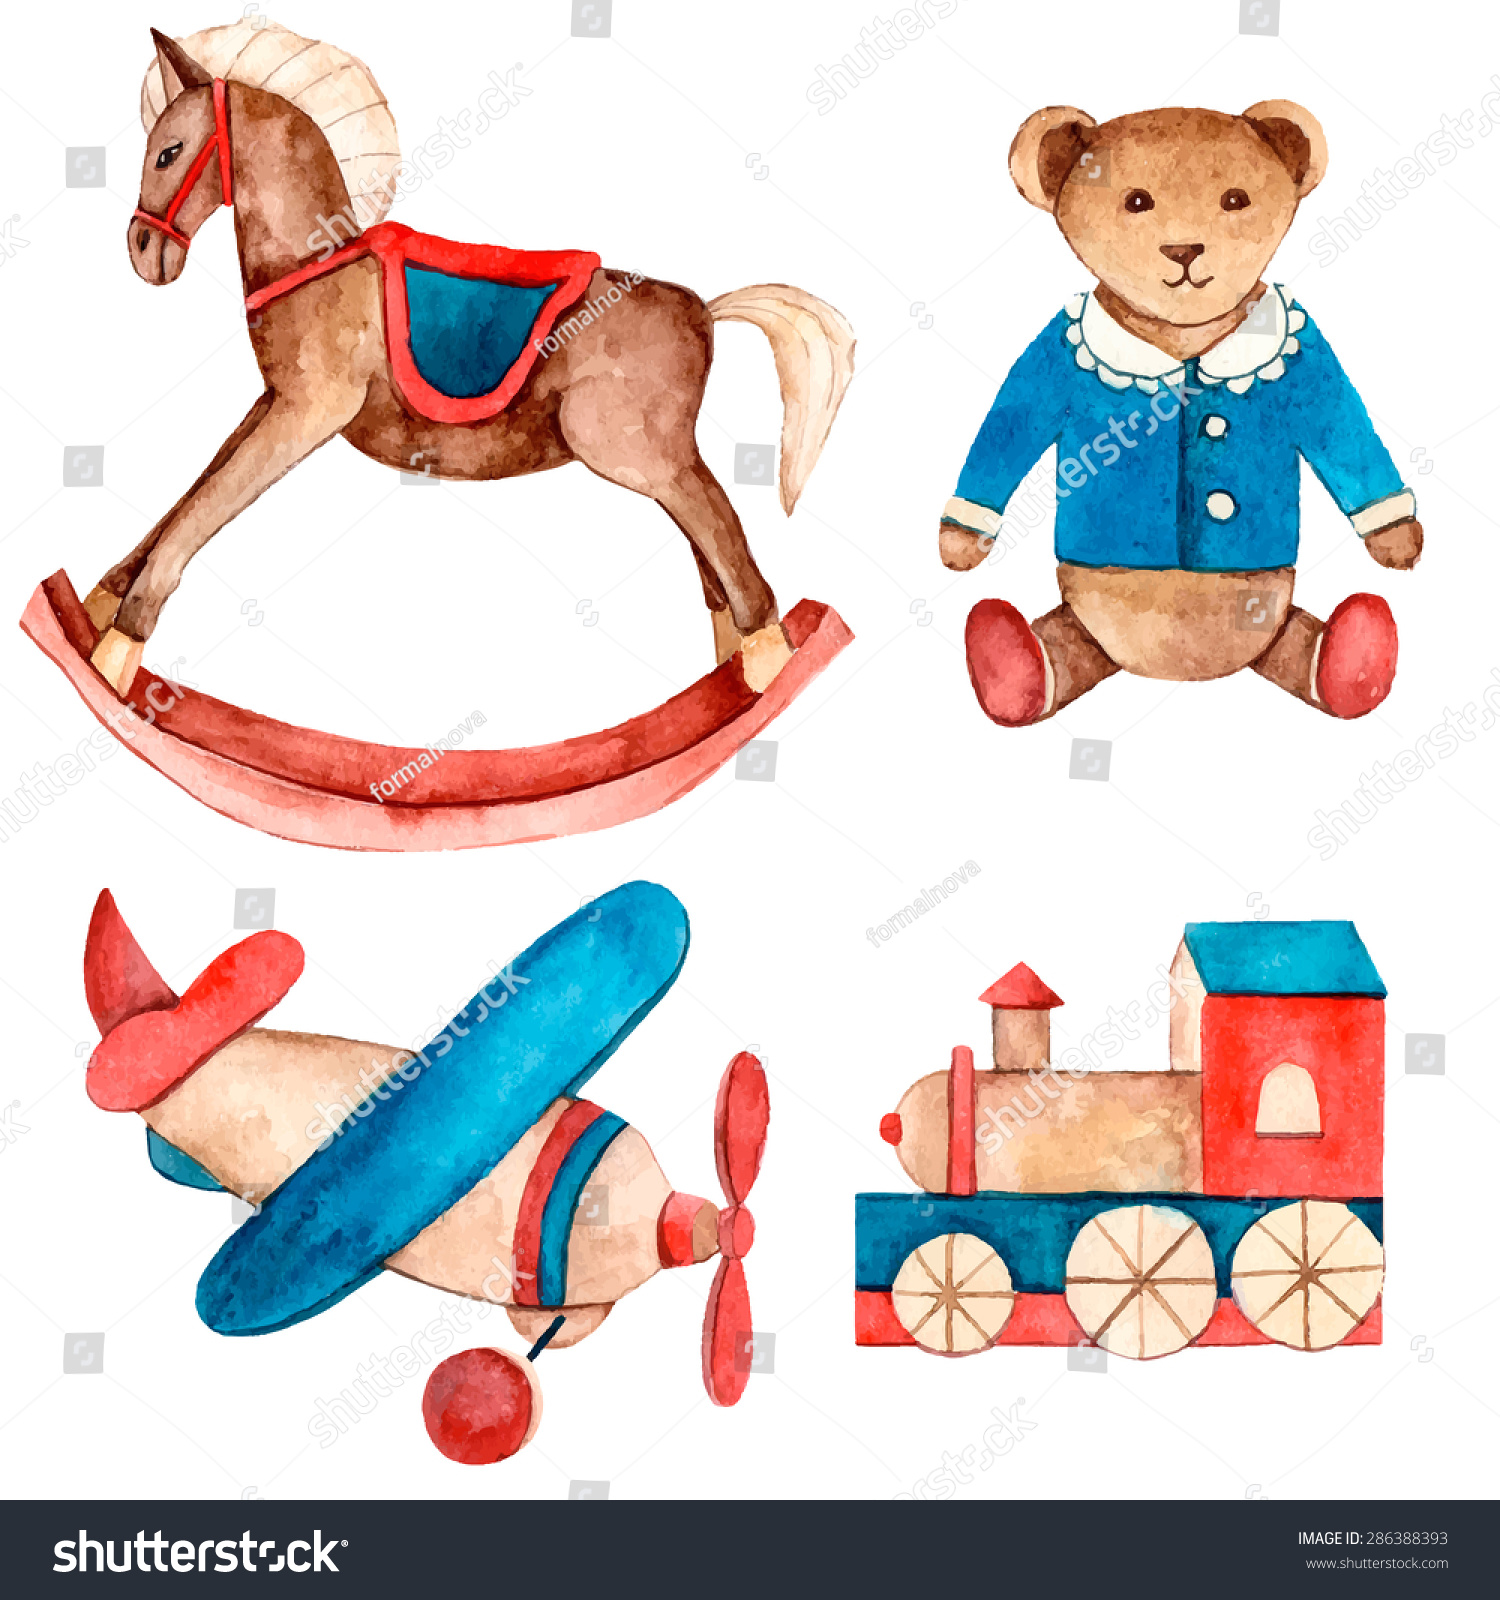 Baby Toys Drawing : Watercolor vintage set toys hand drawn stock vector